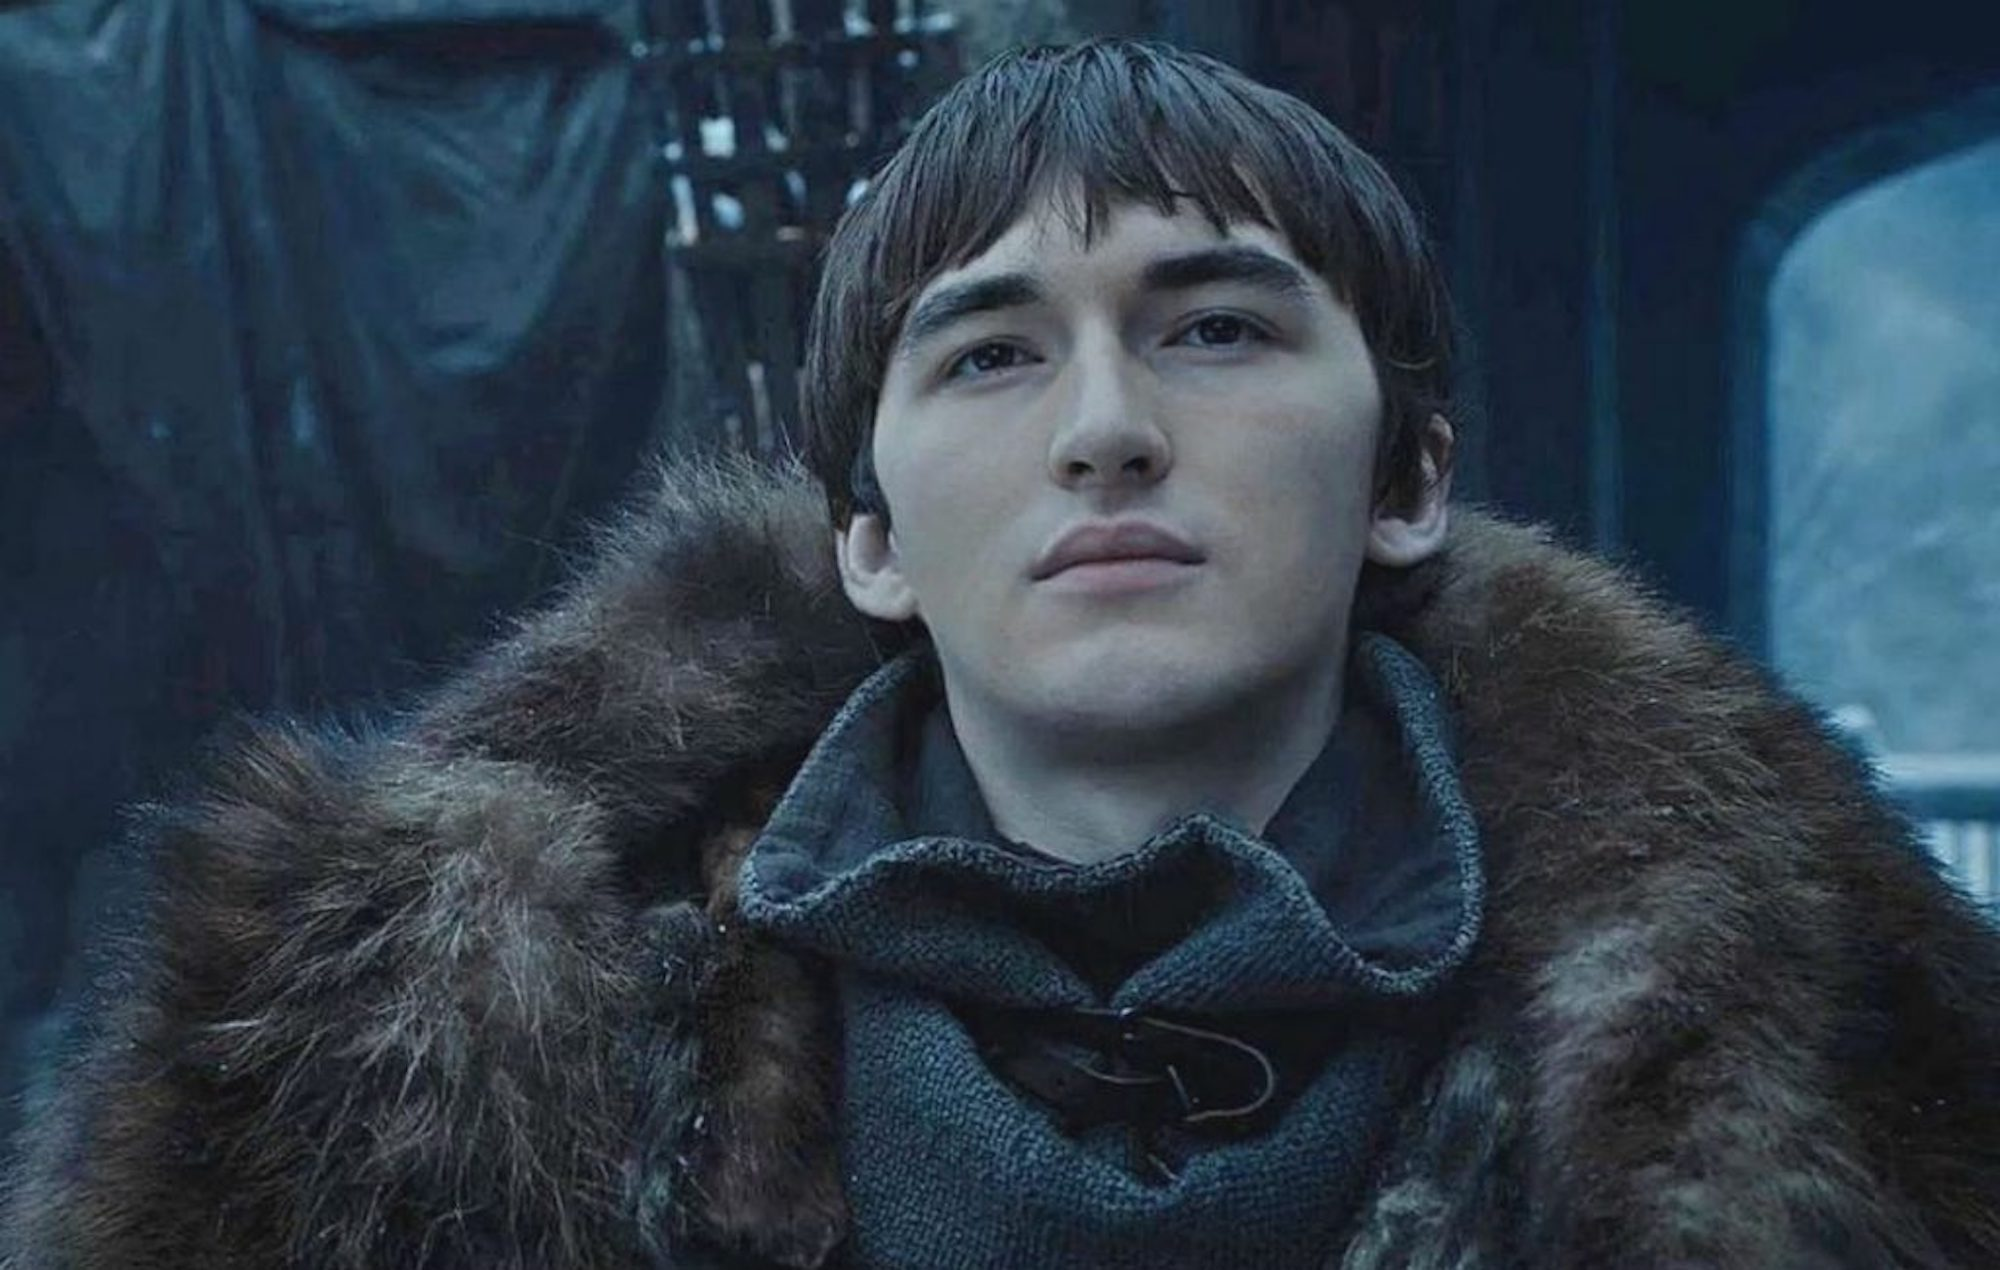 The 'Game of Thrones' WhatsApp group is no more, according to Isaac Hempstead